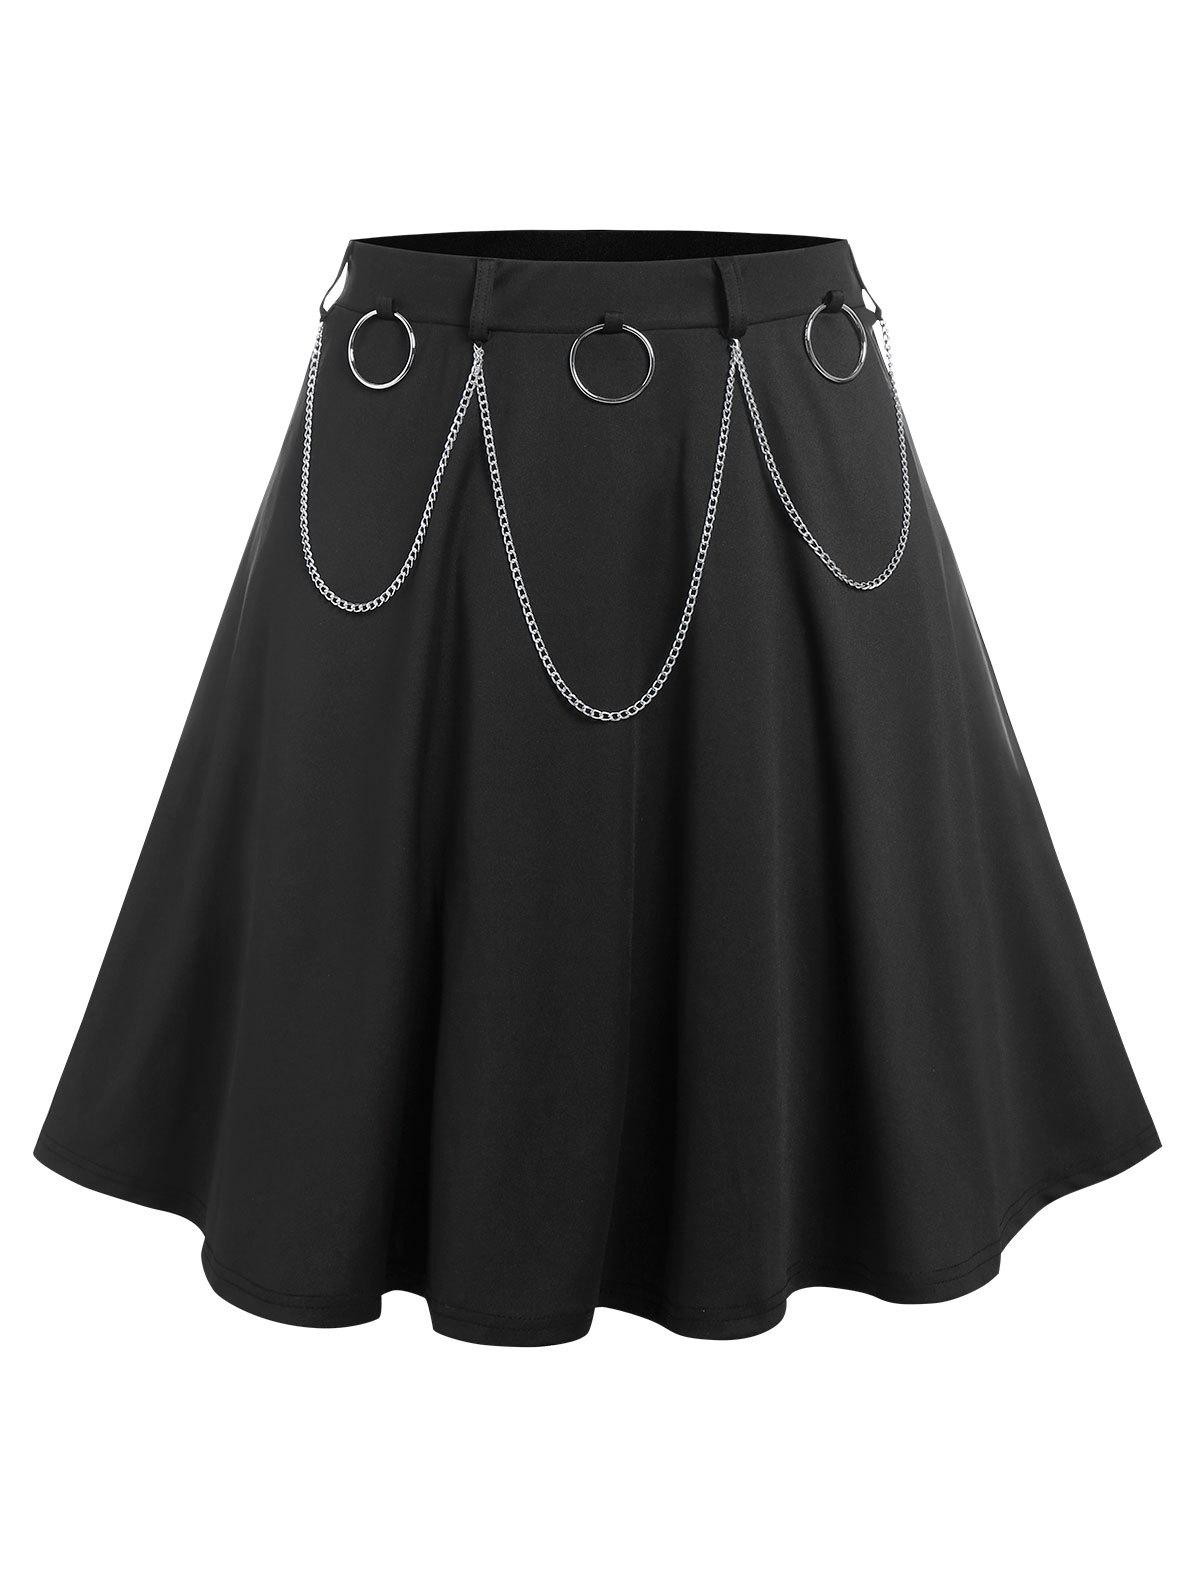 Plus Size O Ring Chain A Line Skirt - BLACK 5X